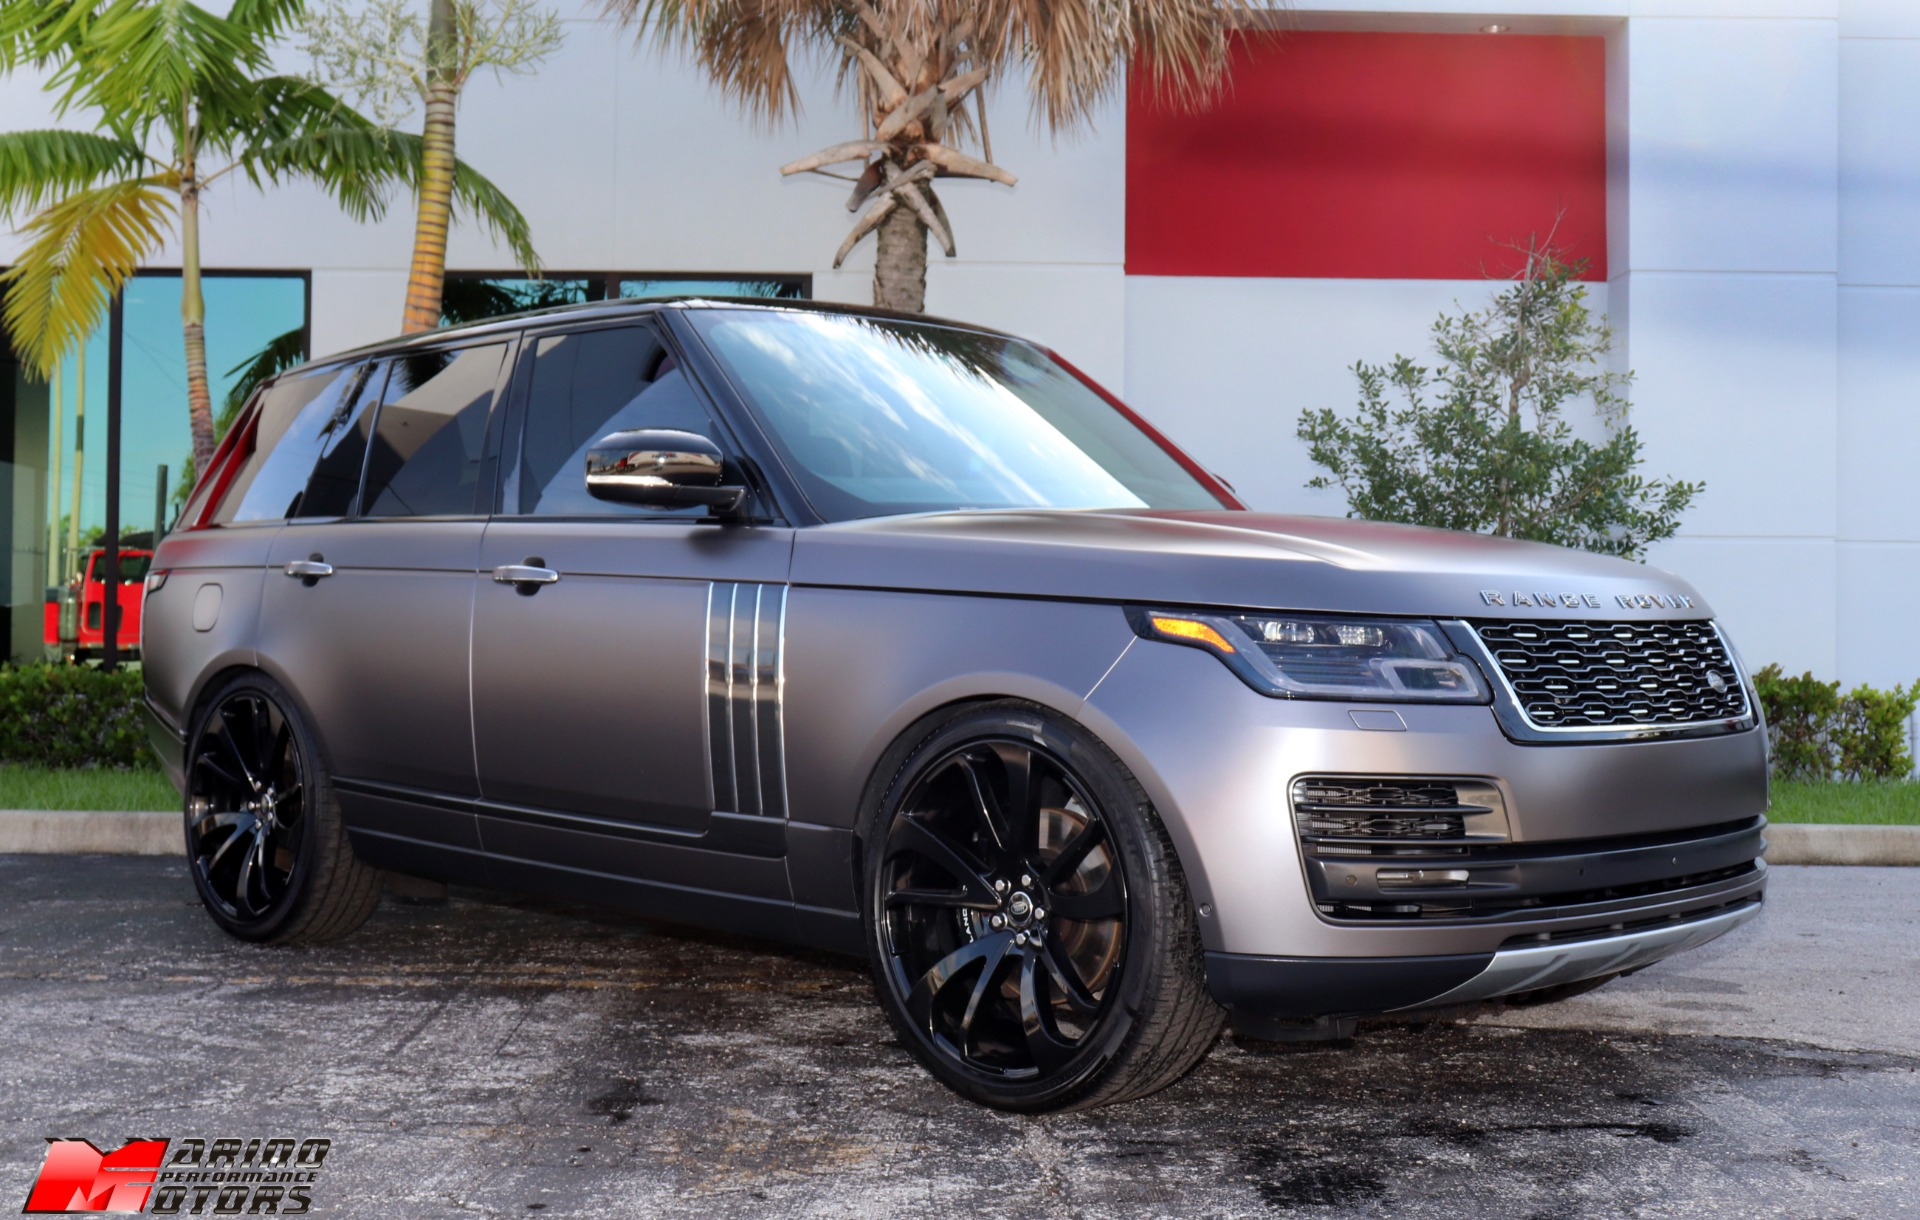 Used-2018-Land-Rover-Range-Rover-SVAutobiography-Dynamic